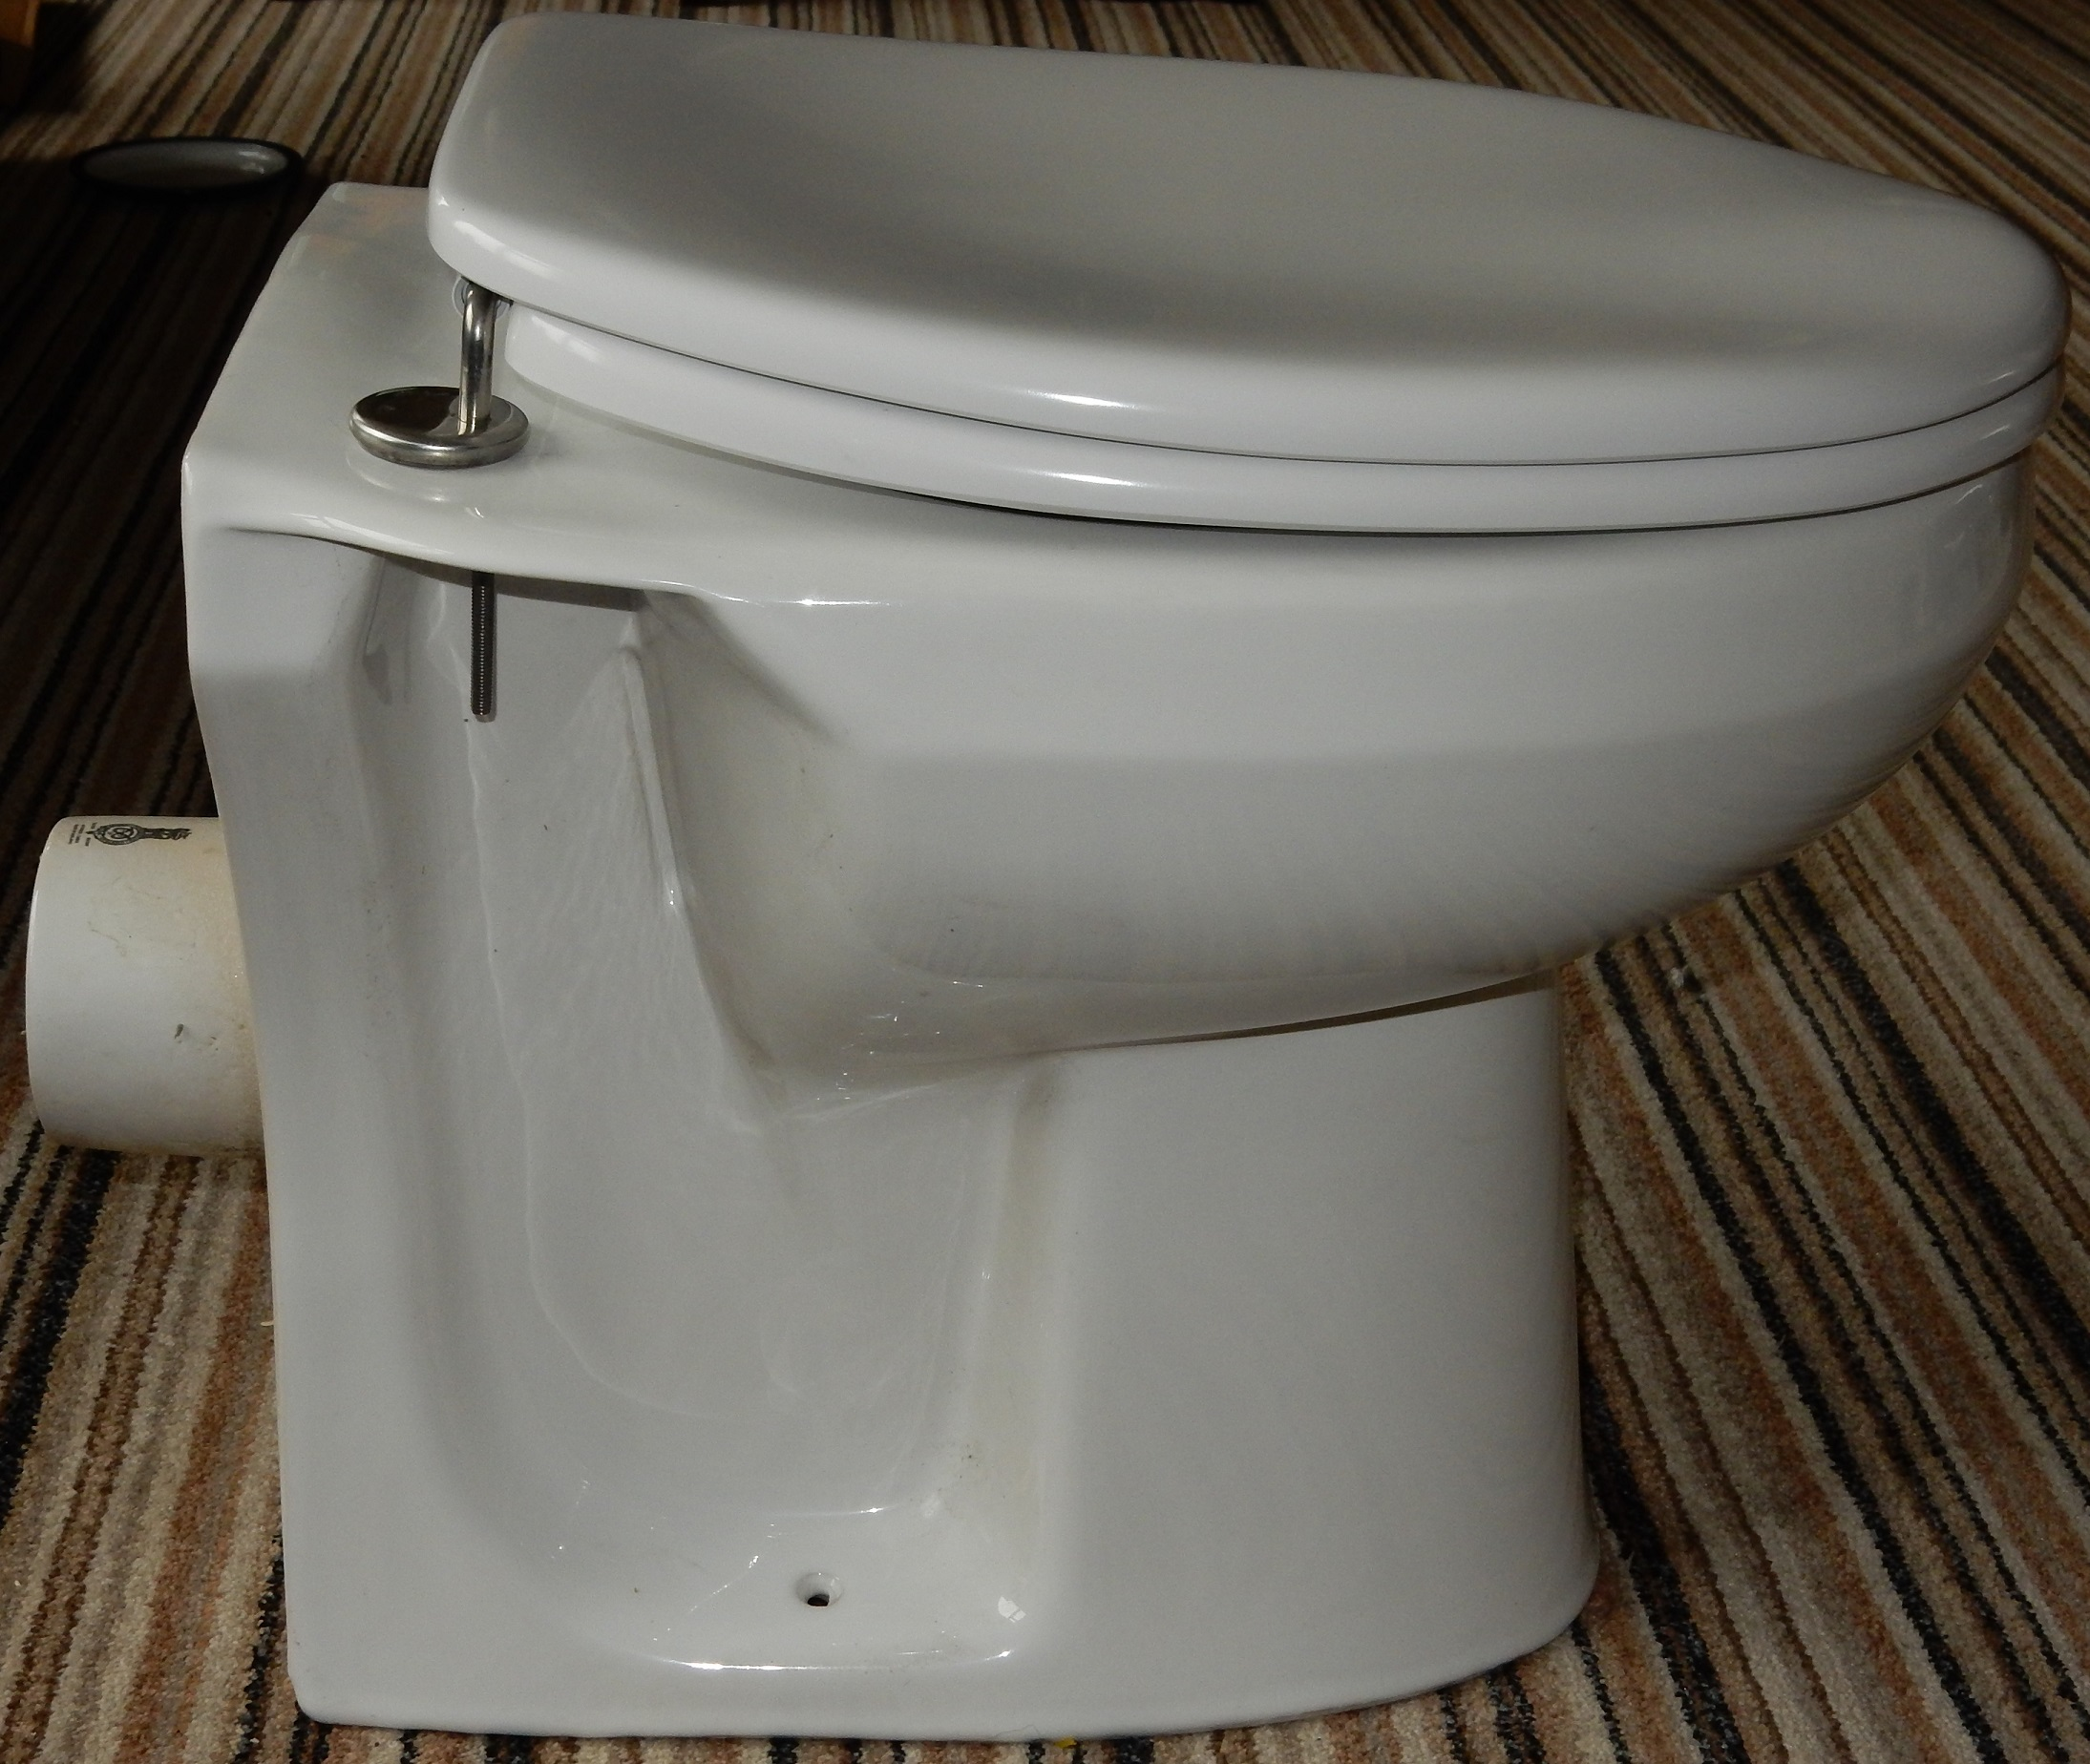 Toilet Seats | Sanitaryware discontinued and obsolete colours | UK